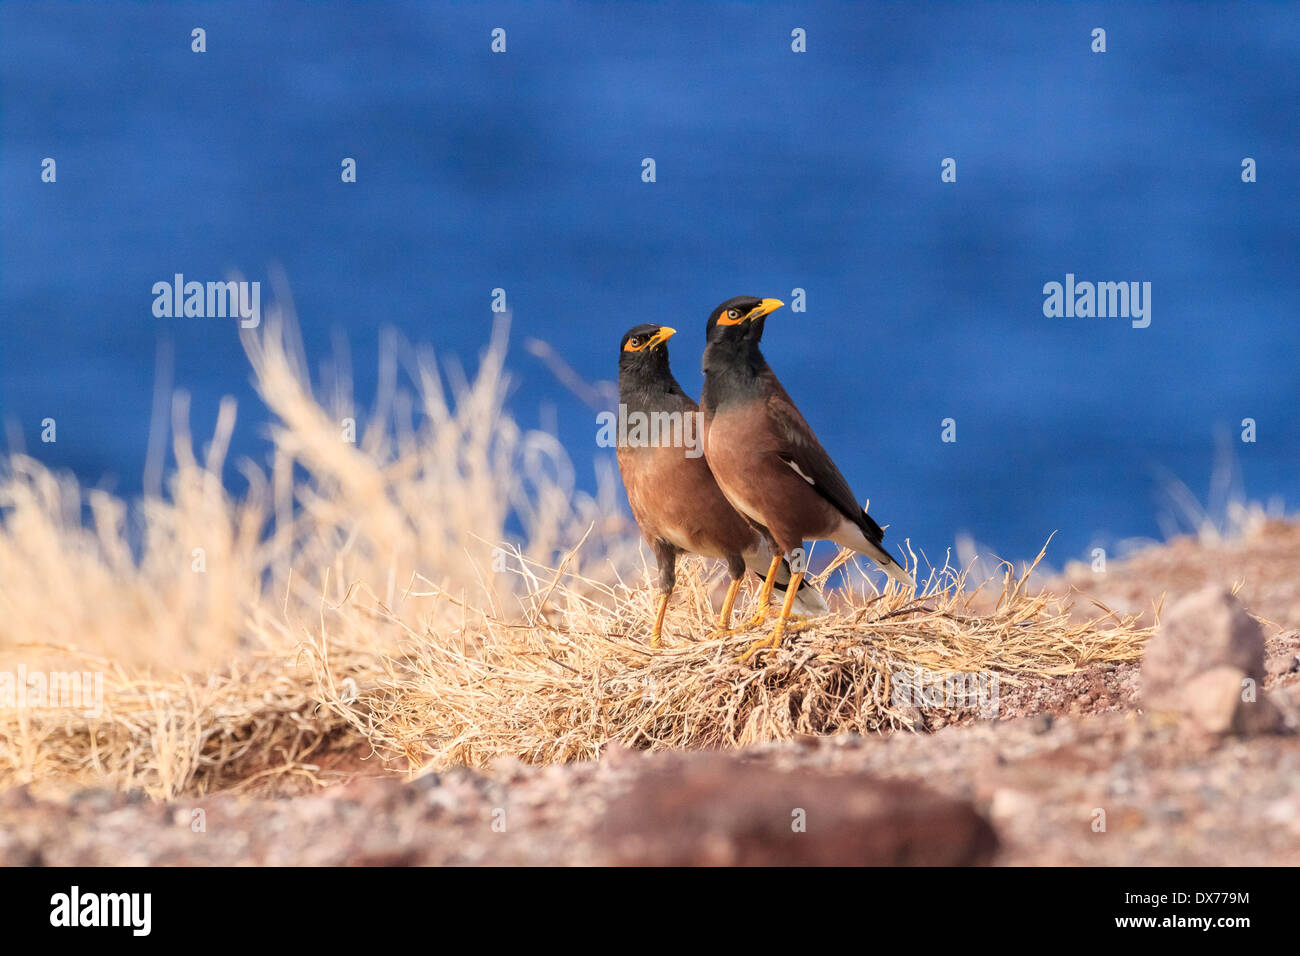 Two Common Myna Birds in the same pose. - Stock Image